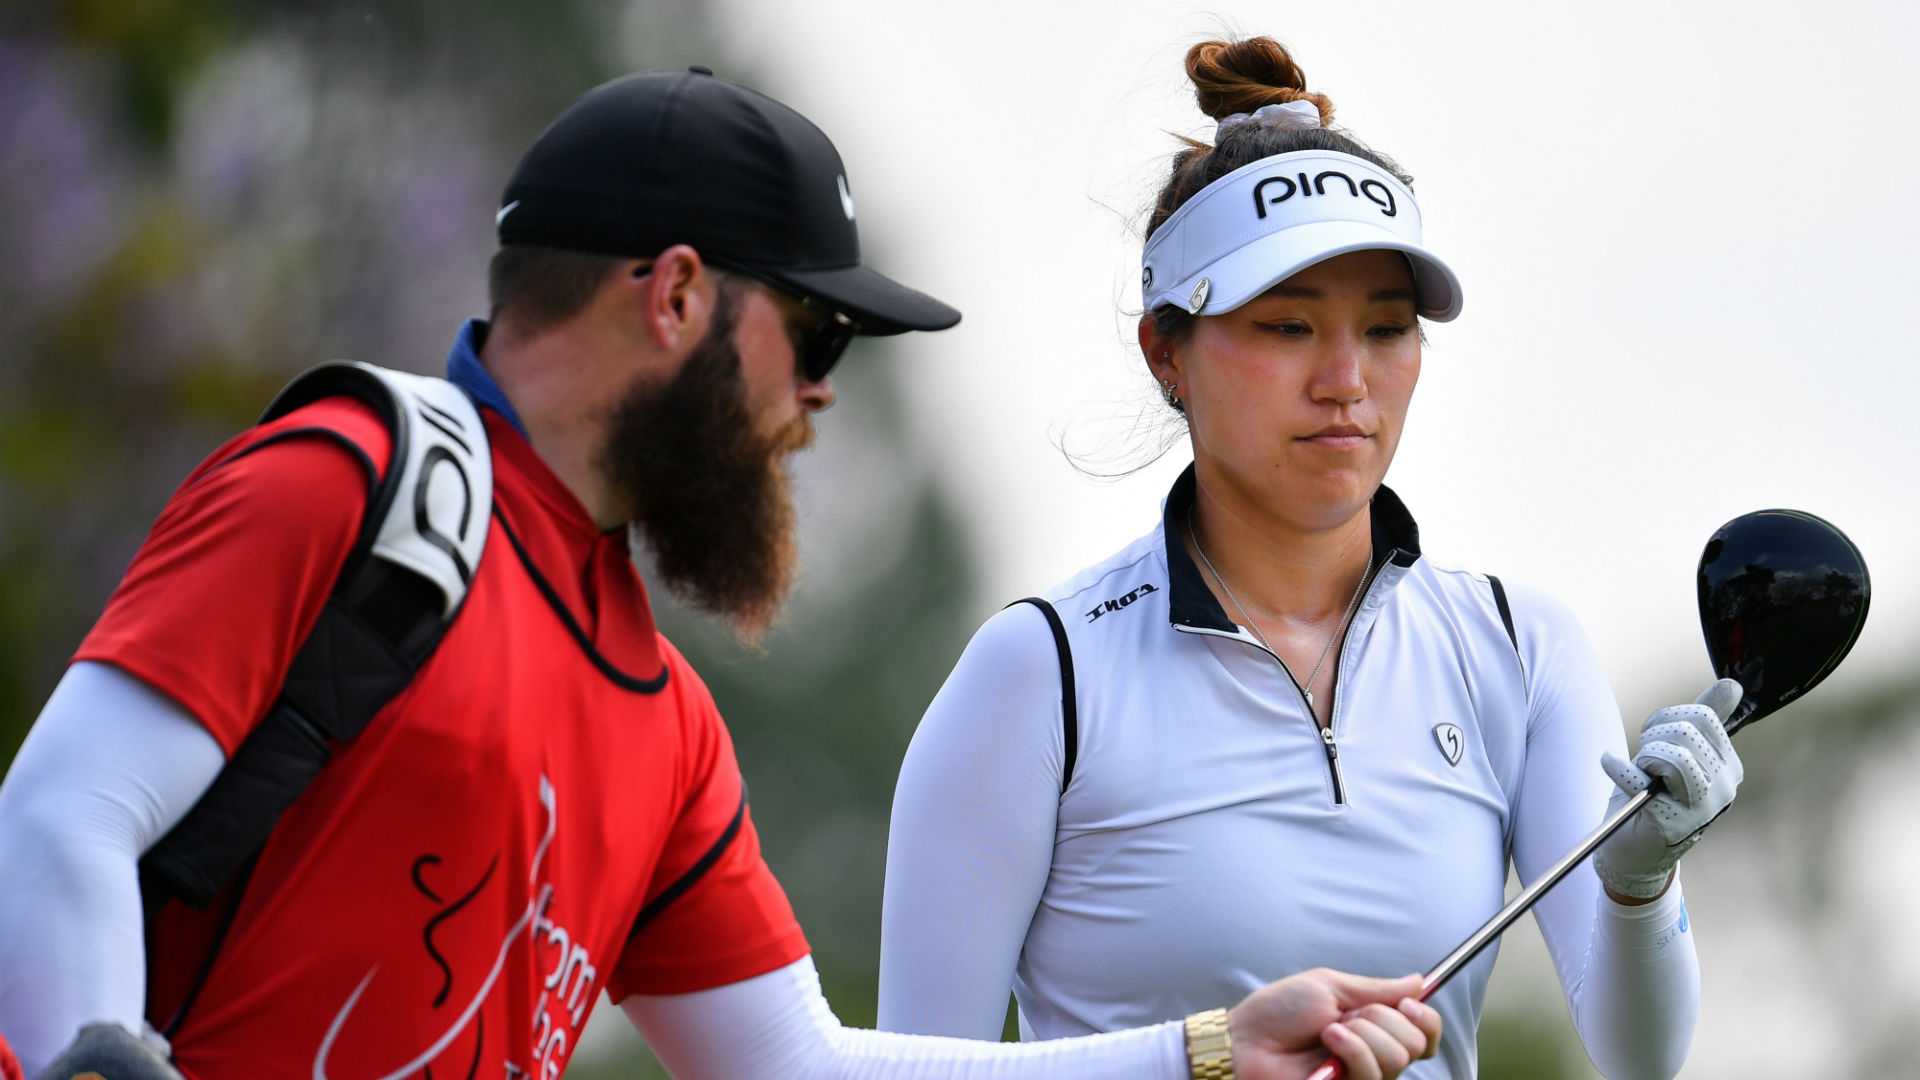 At the LPGA's ANA Inspiration, Annie Park had her clubs stolen before missing the cut in round two.